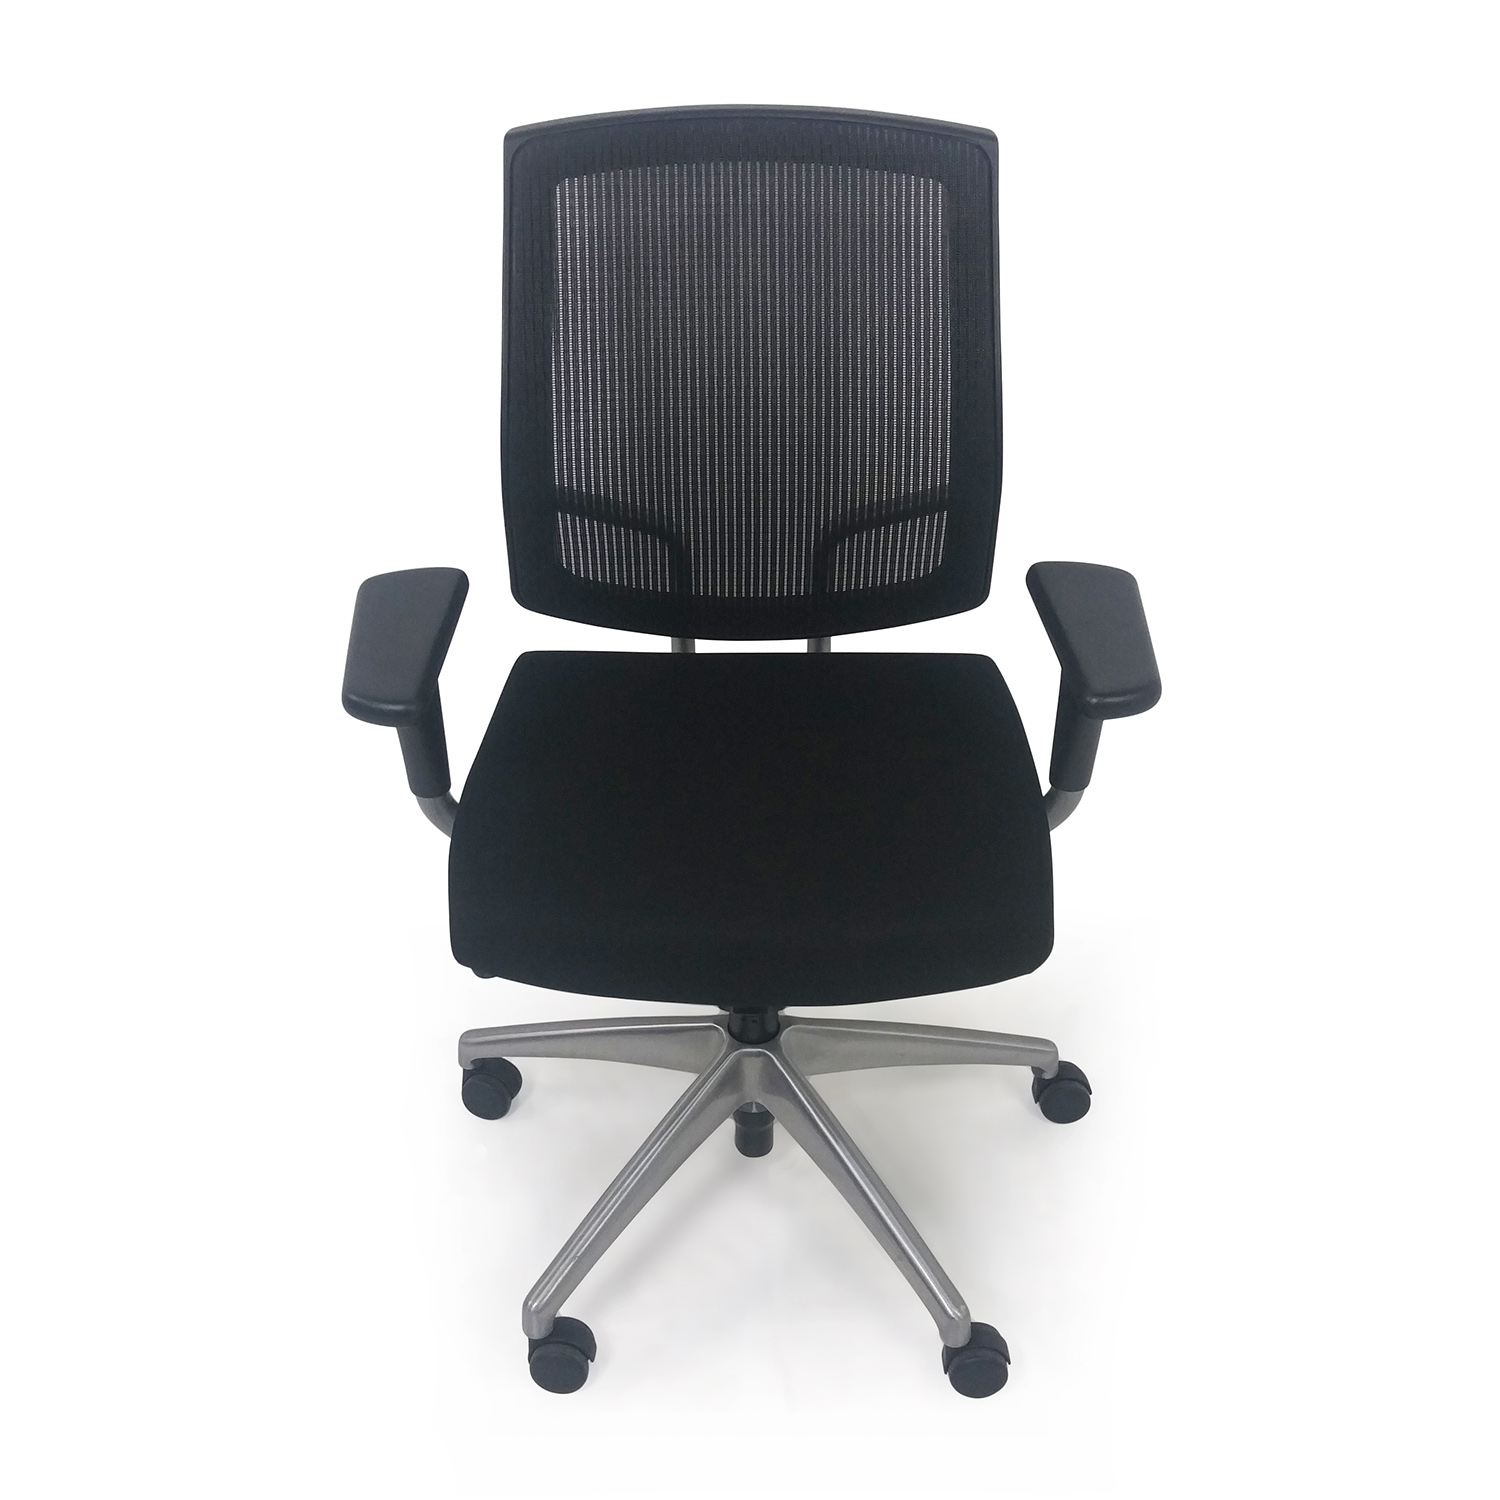 buy Sitonit Seating Mesh Swivel Chair Sitonit Seating Chairs